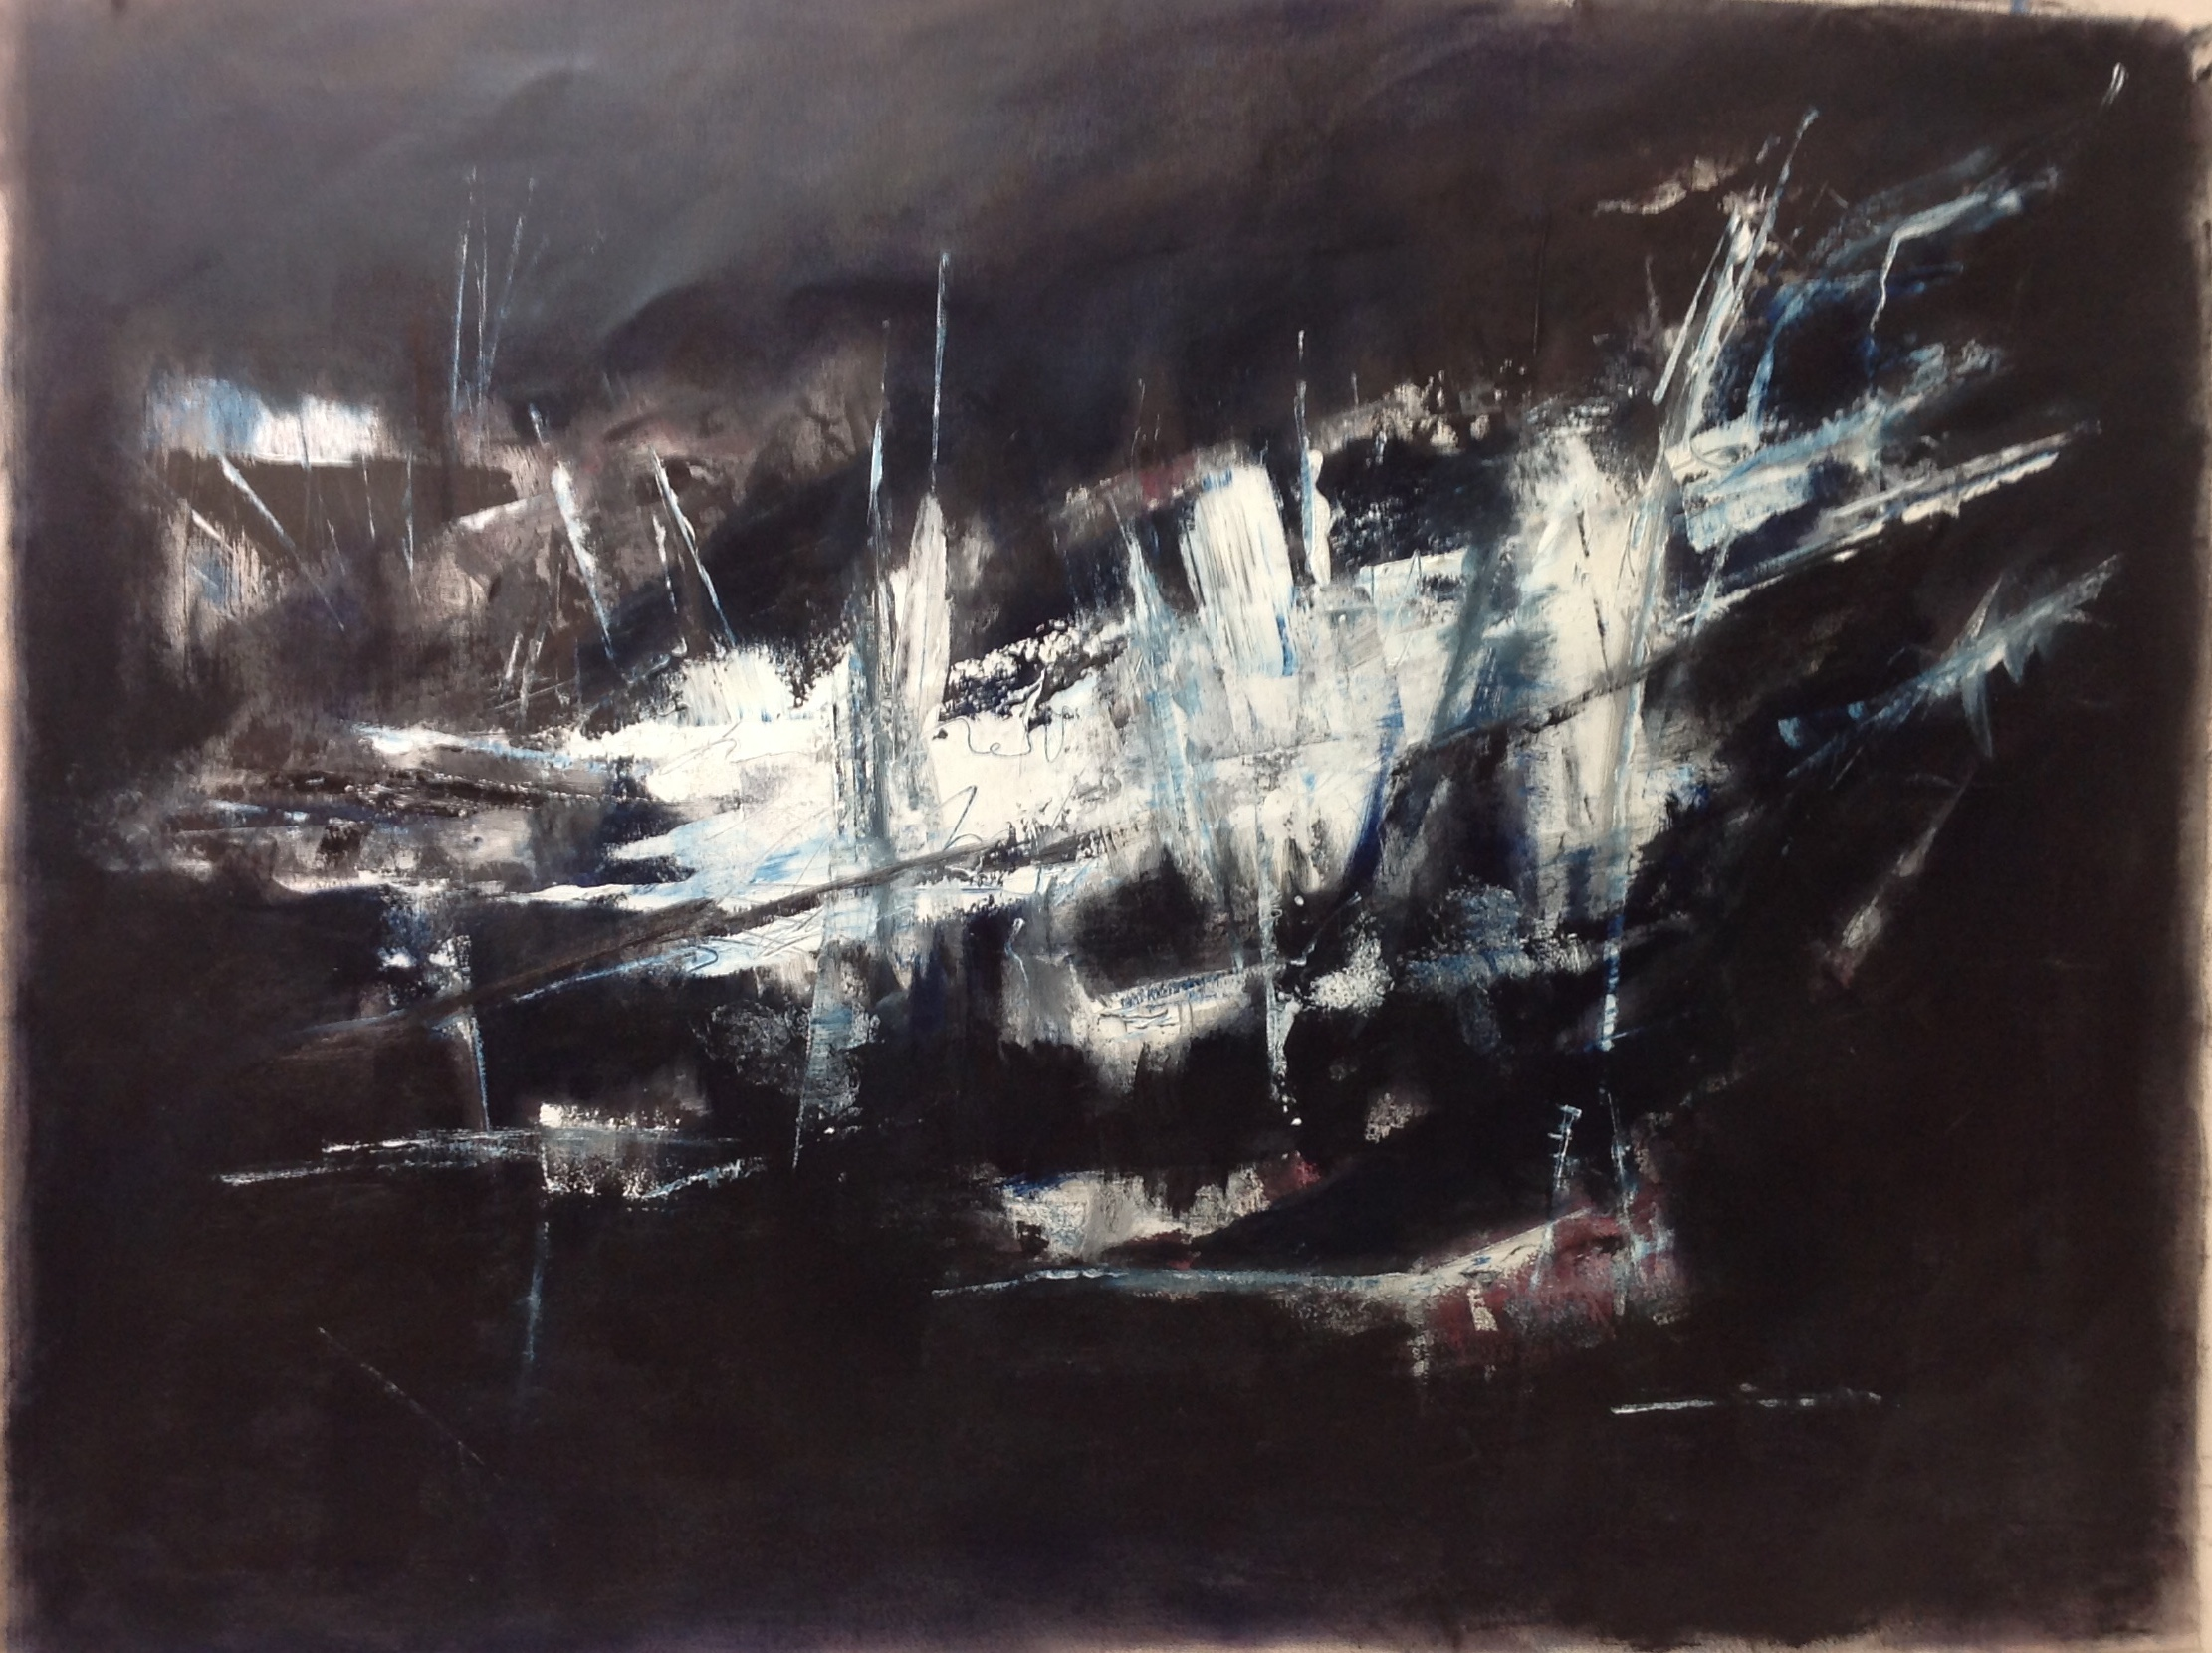 Untitled, oil on canvas, 28 x 38 inches - 78 x 95 cm